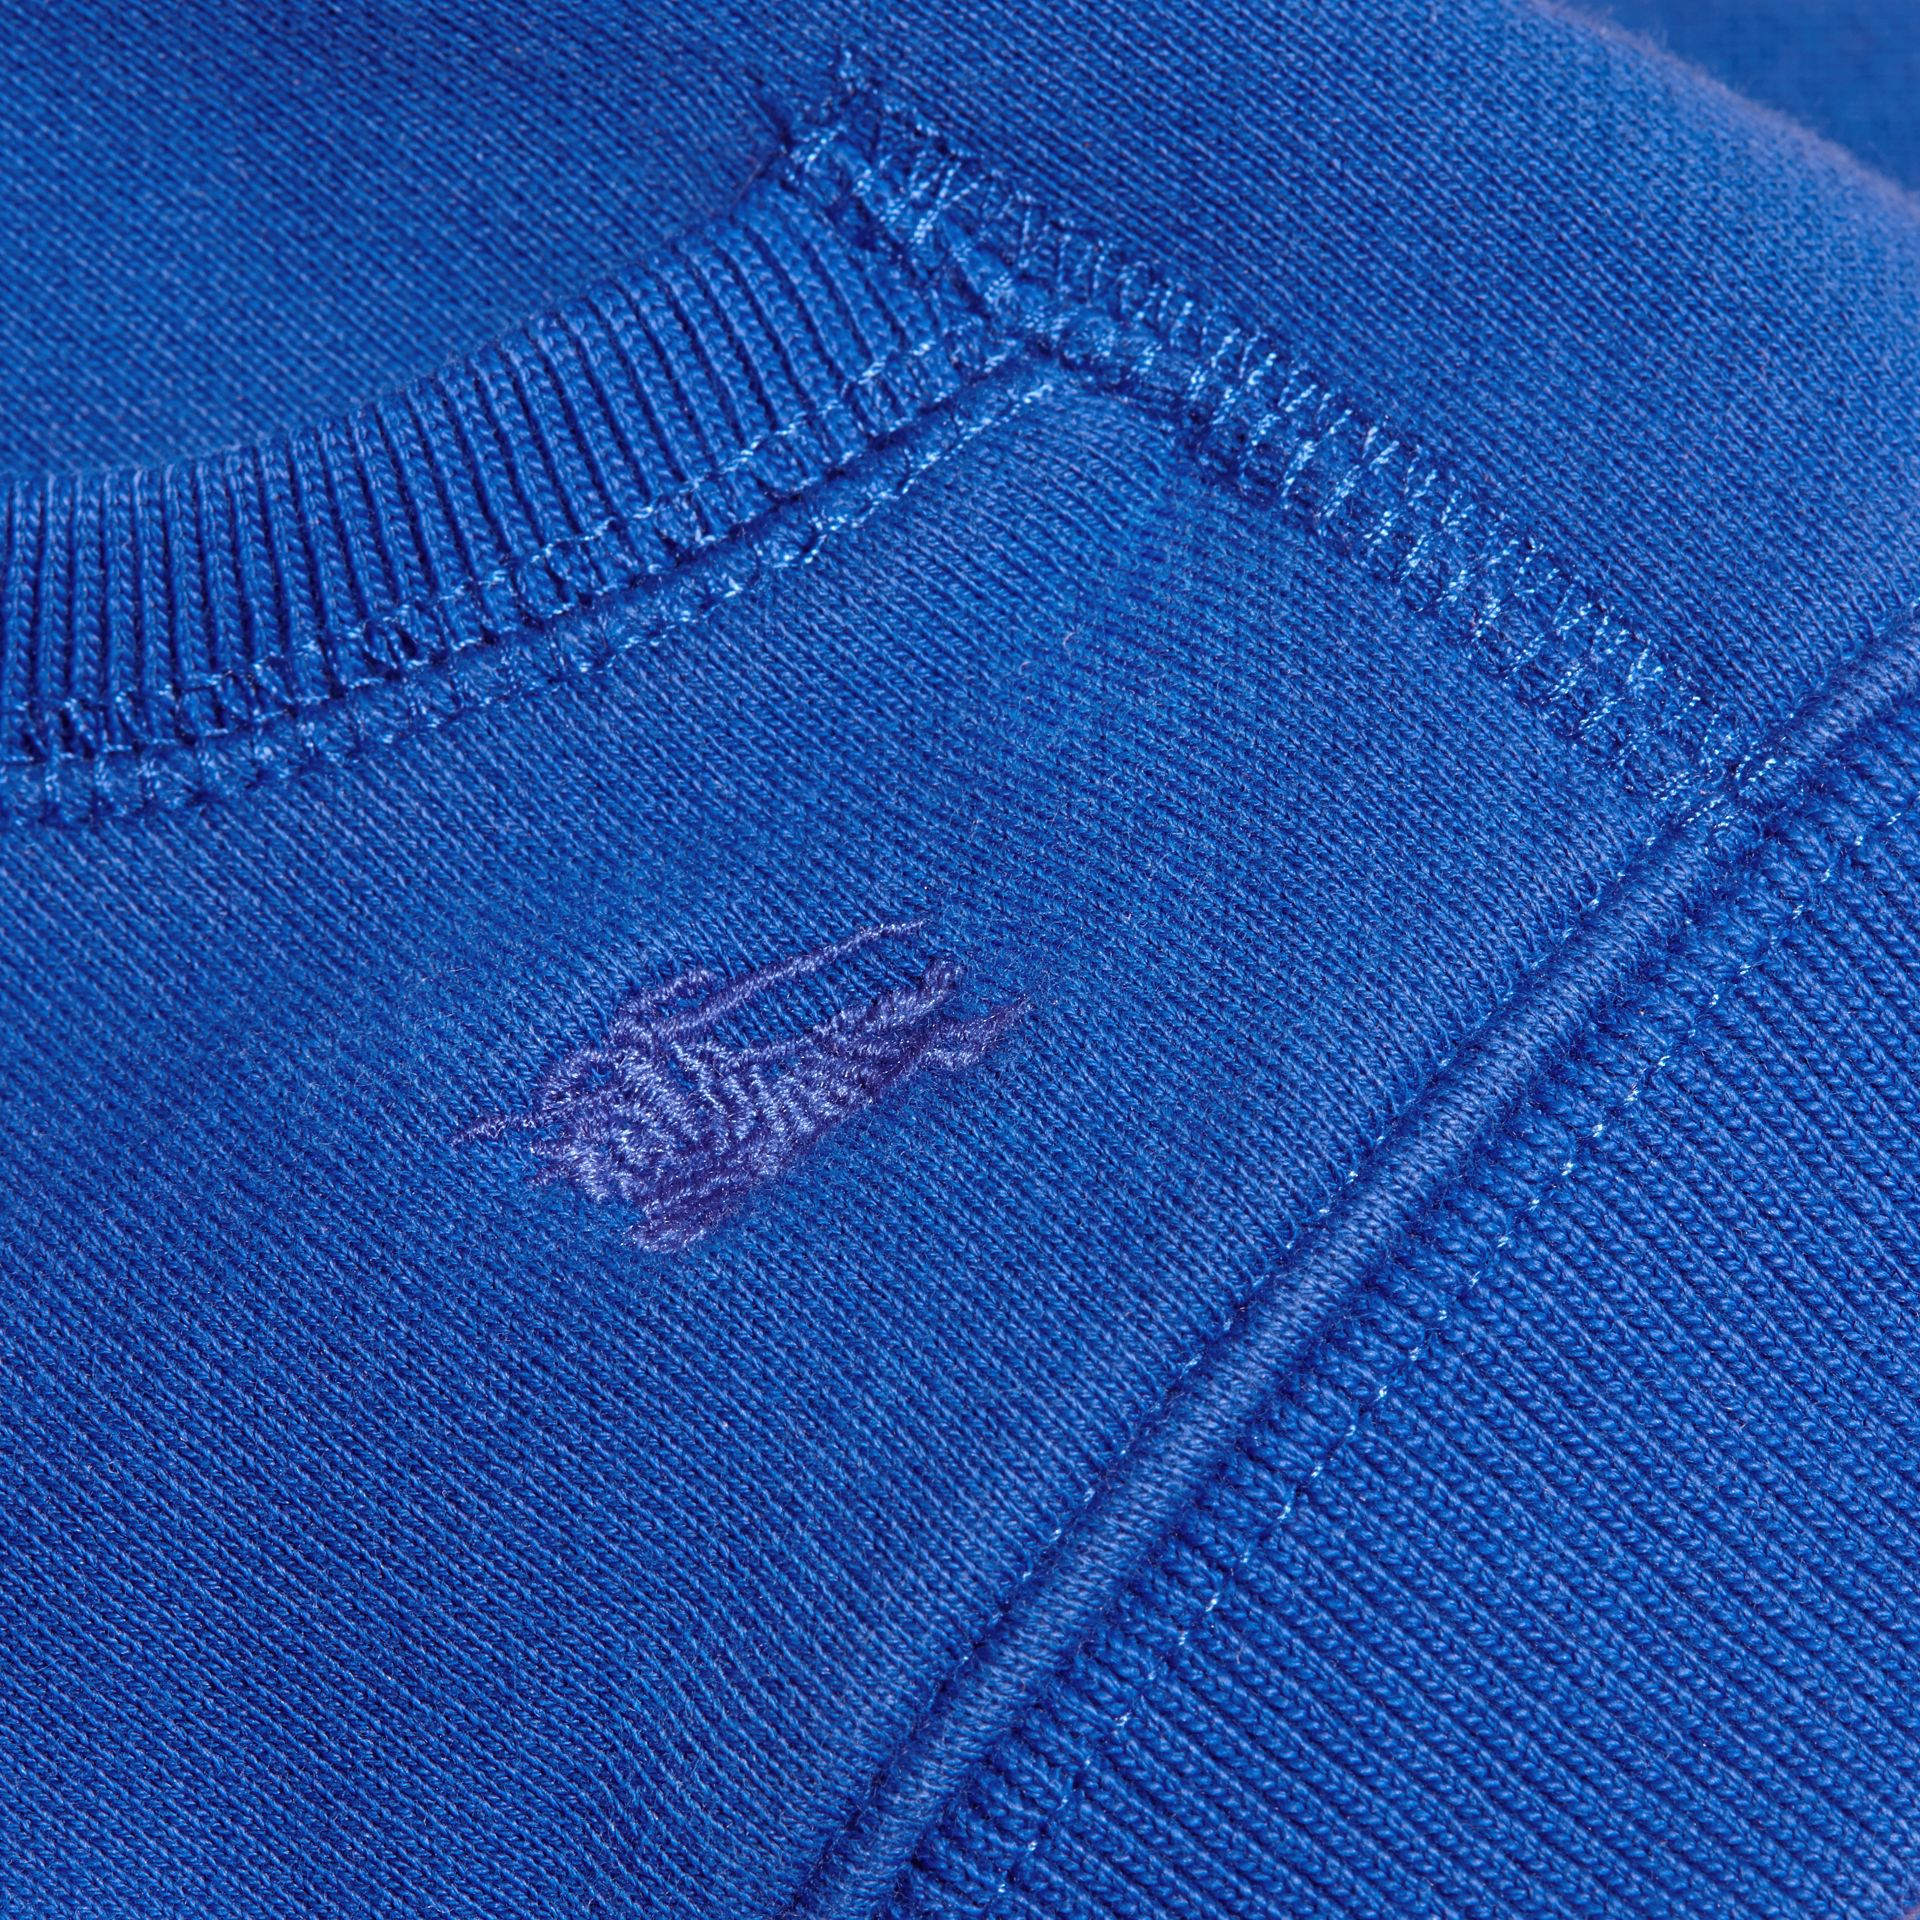 Brilliant blue Check Detail Hooded Cotton Top Brilliant Blue - gallery image 2